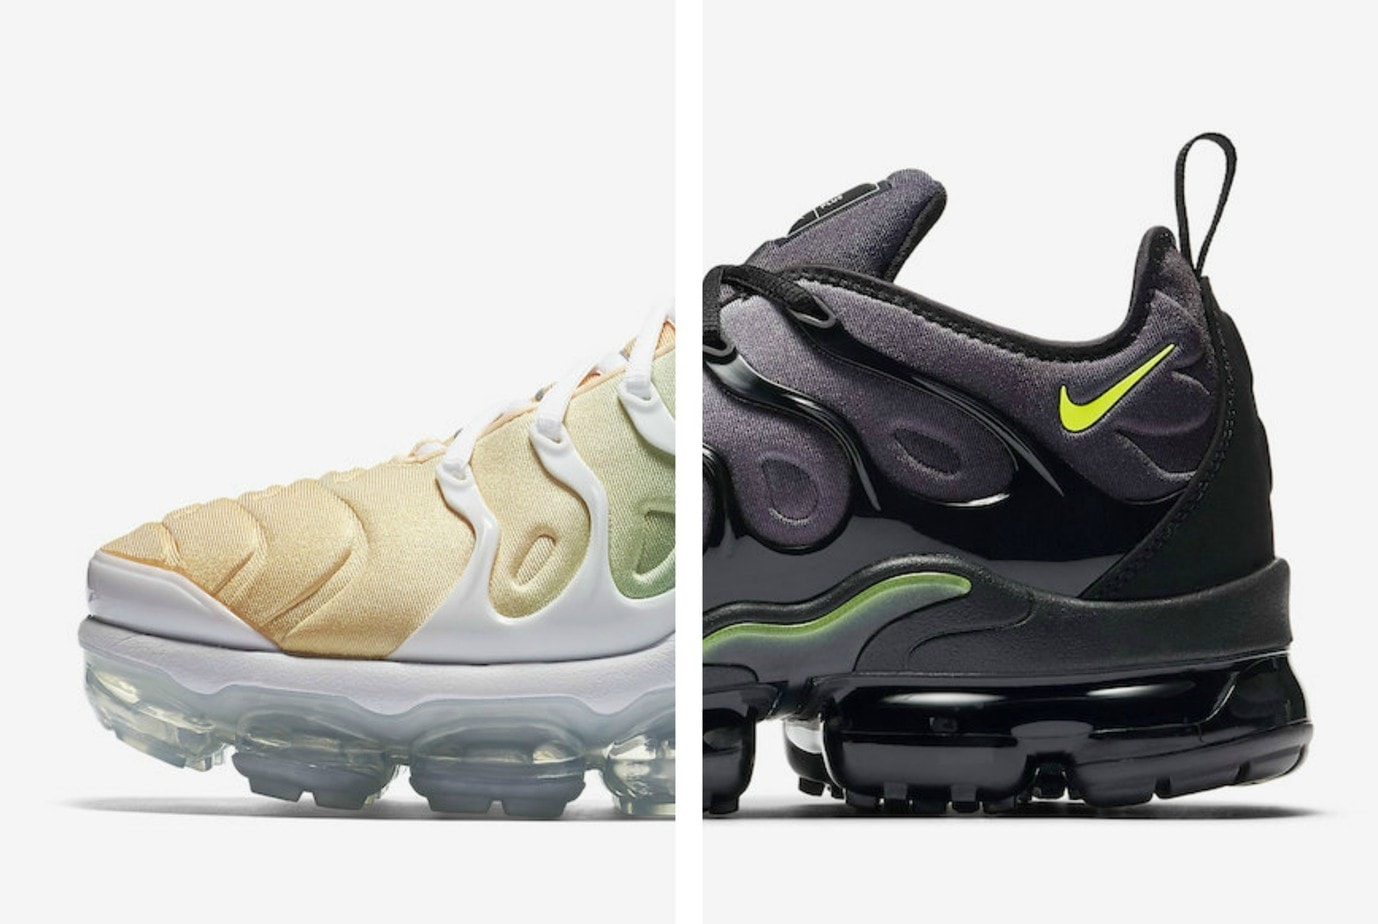 The new Nike Air Vapormax Plus first release in January of this year. The  fresh silhouette was a surprise hit, selling out at most retailers.